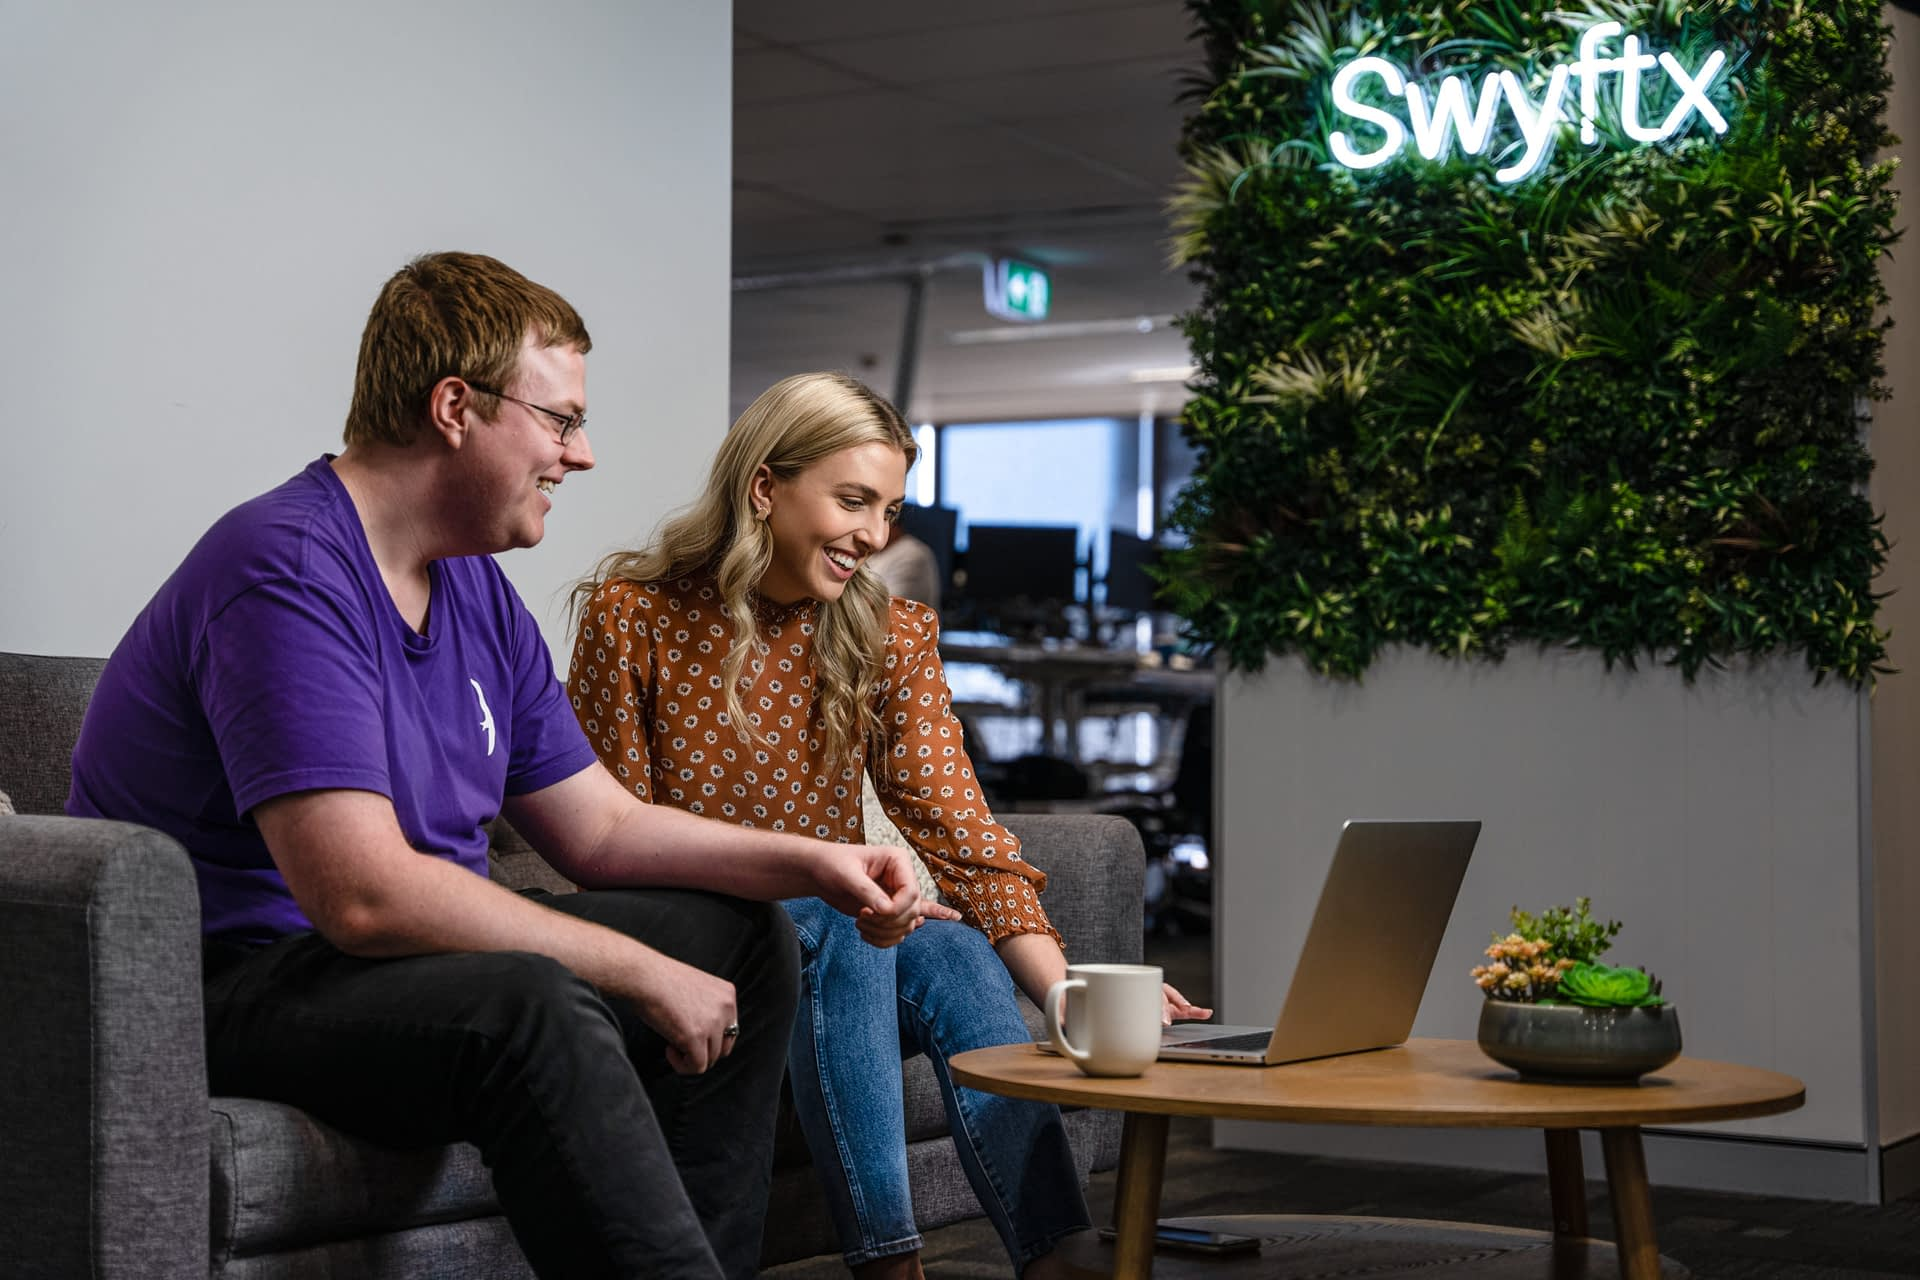 Man and woman looking at computer in office